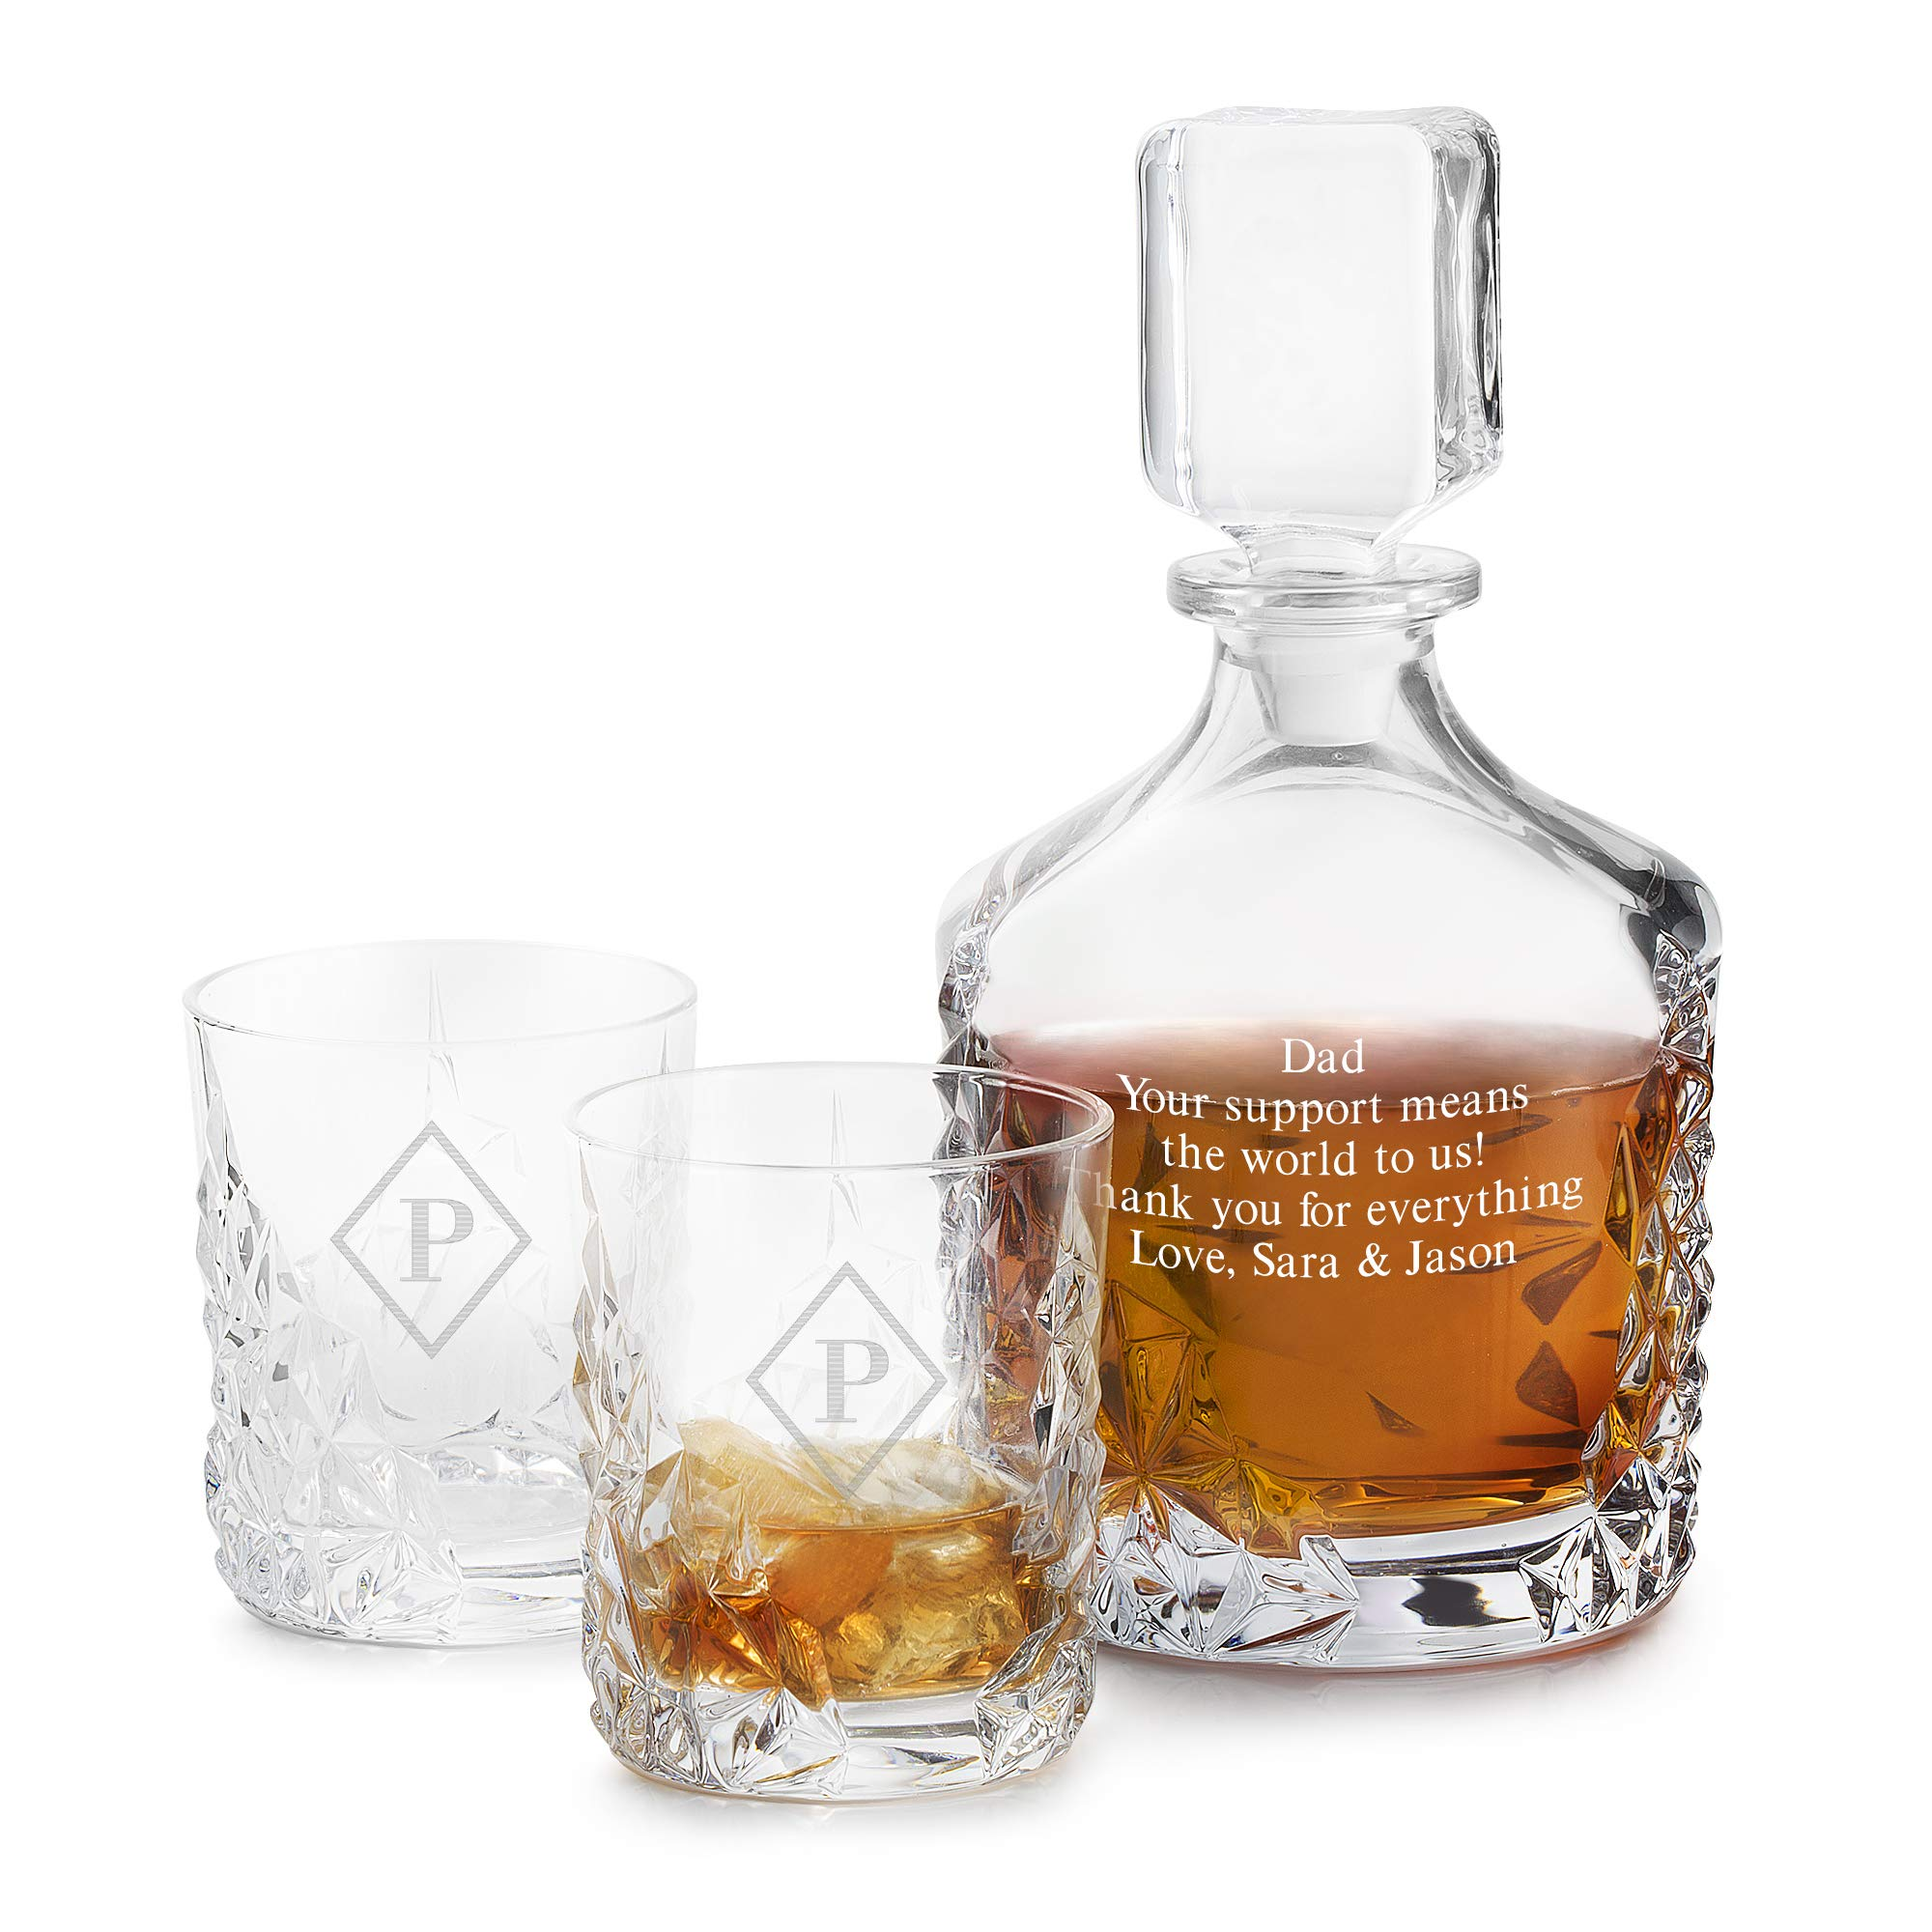 Things Remembered Personalized Sculpture Decanter Set with Engraving Included